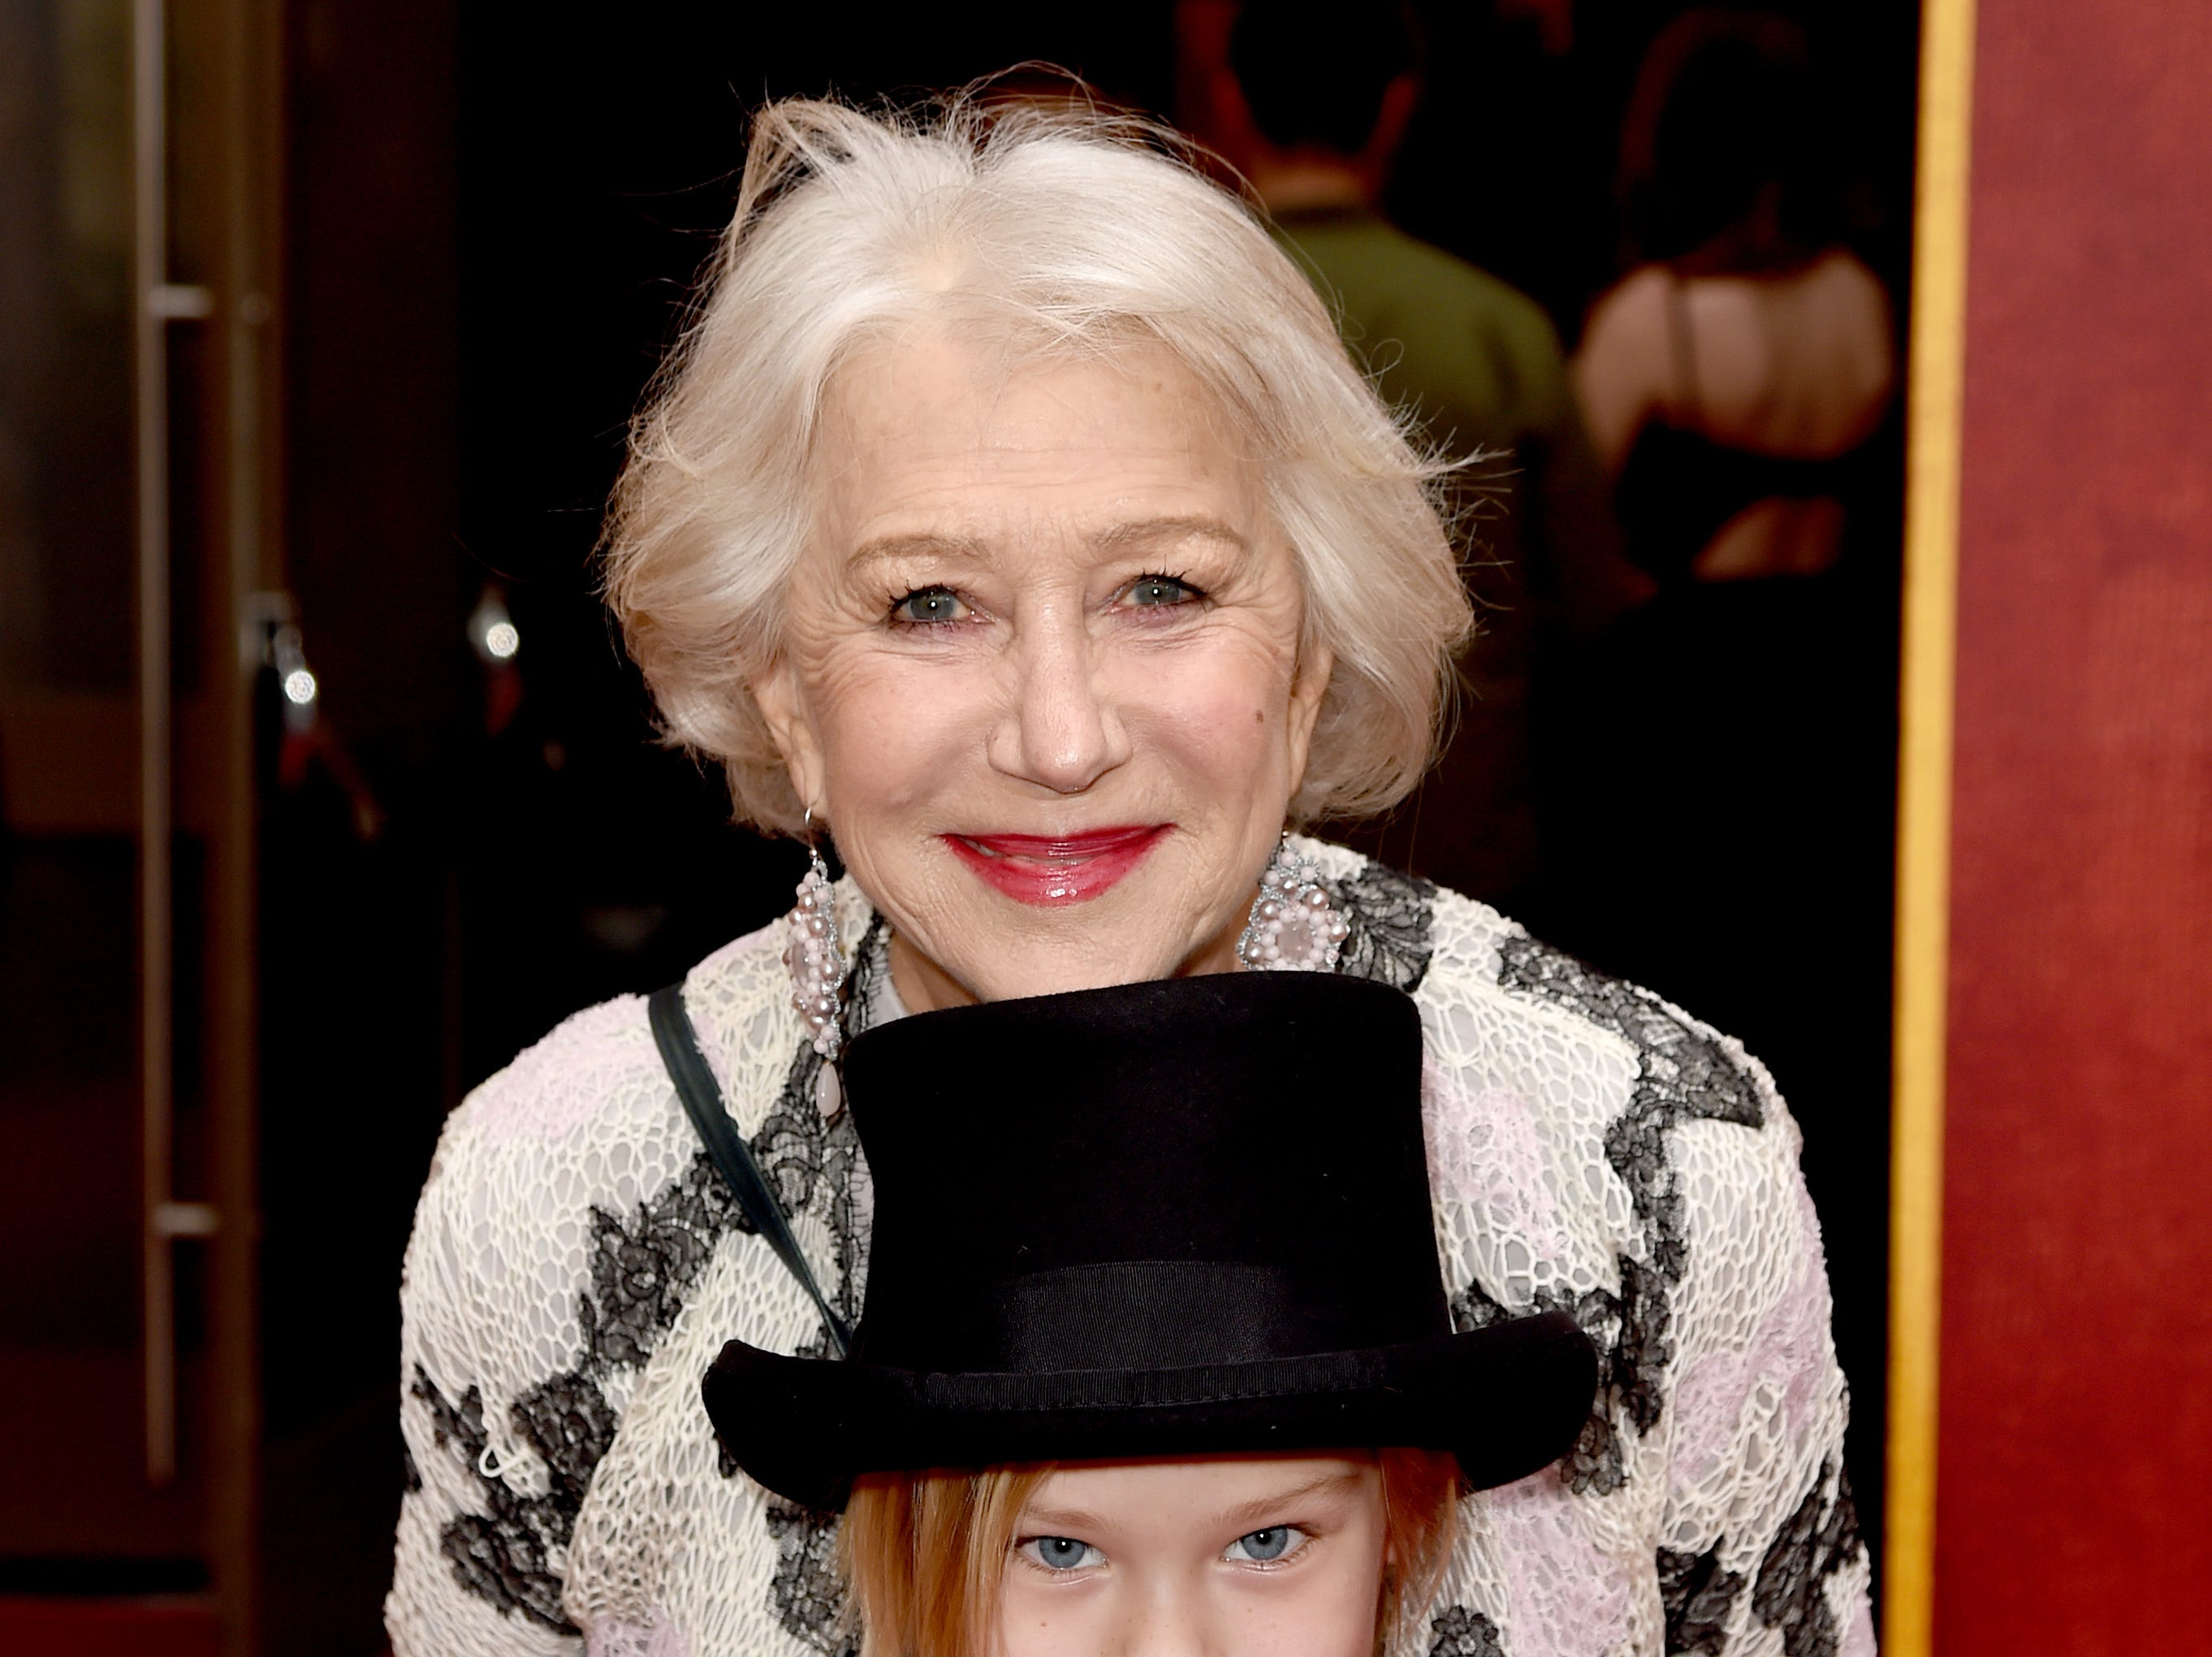 """LOS ANGELES, CALIFORNIA - MARCH 11: Helen Mirren and her grandchild attend the premiere of Disney's """"Dumbo"""" at El Capitan Theatre on March 11, 2019 in Los Angeles, California. (Photo by Kevin Winter/Getty Images) ORG XMIT: 775305574 ORIG FILE ID: 1135215218"""